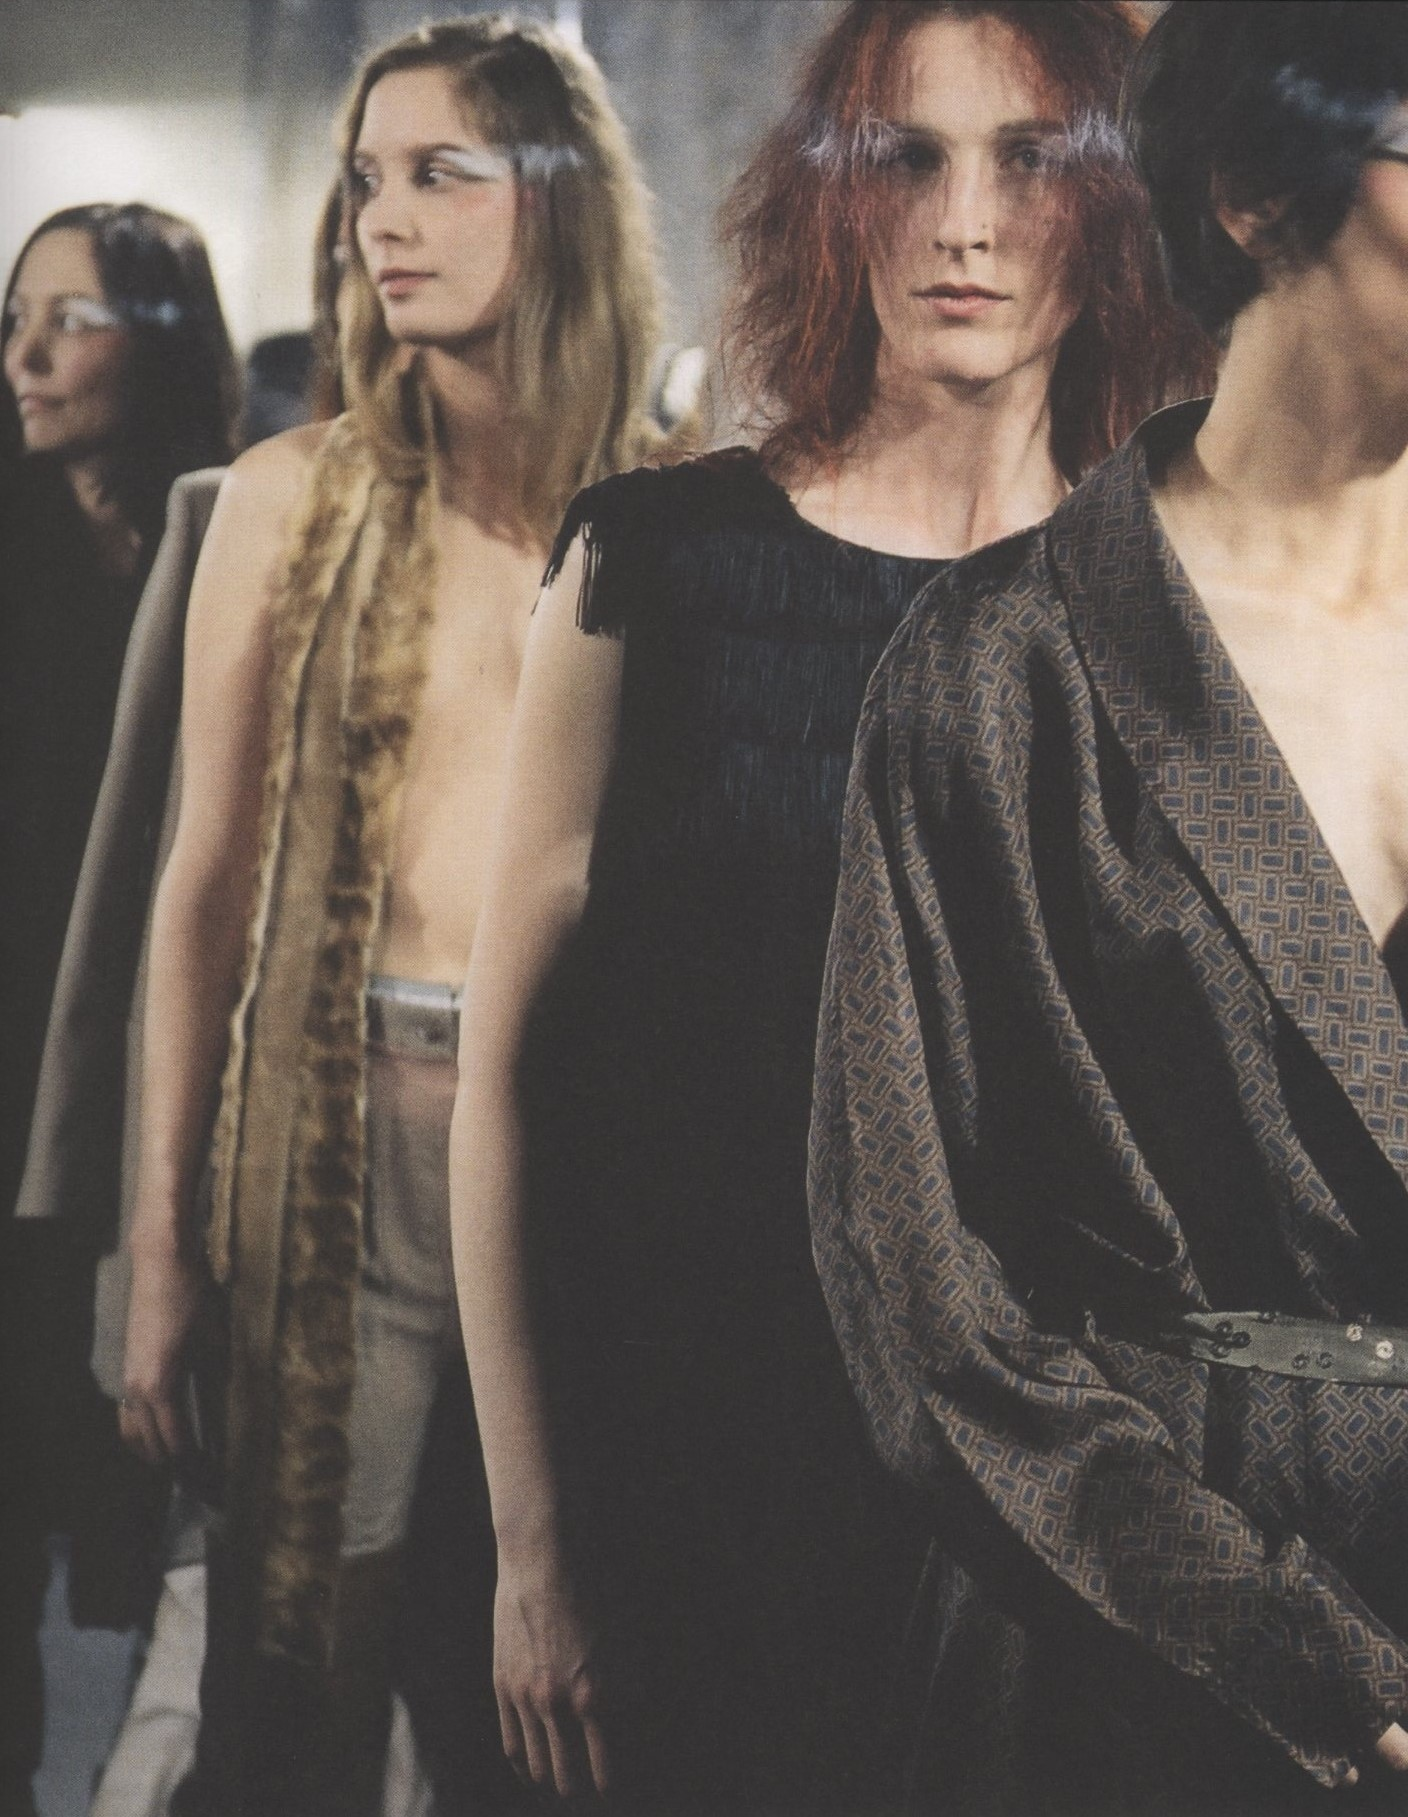 MARTIN MARGIELA AUTUMN/WINTER 2001/2002 PHOTOGRAPHY MARINA FAUST